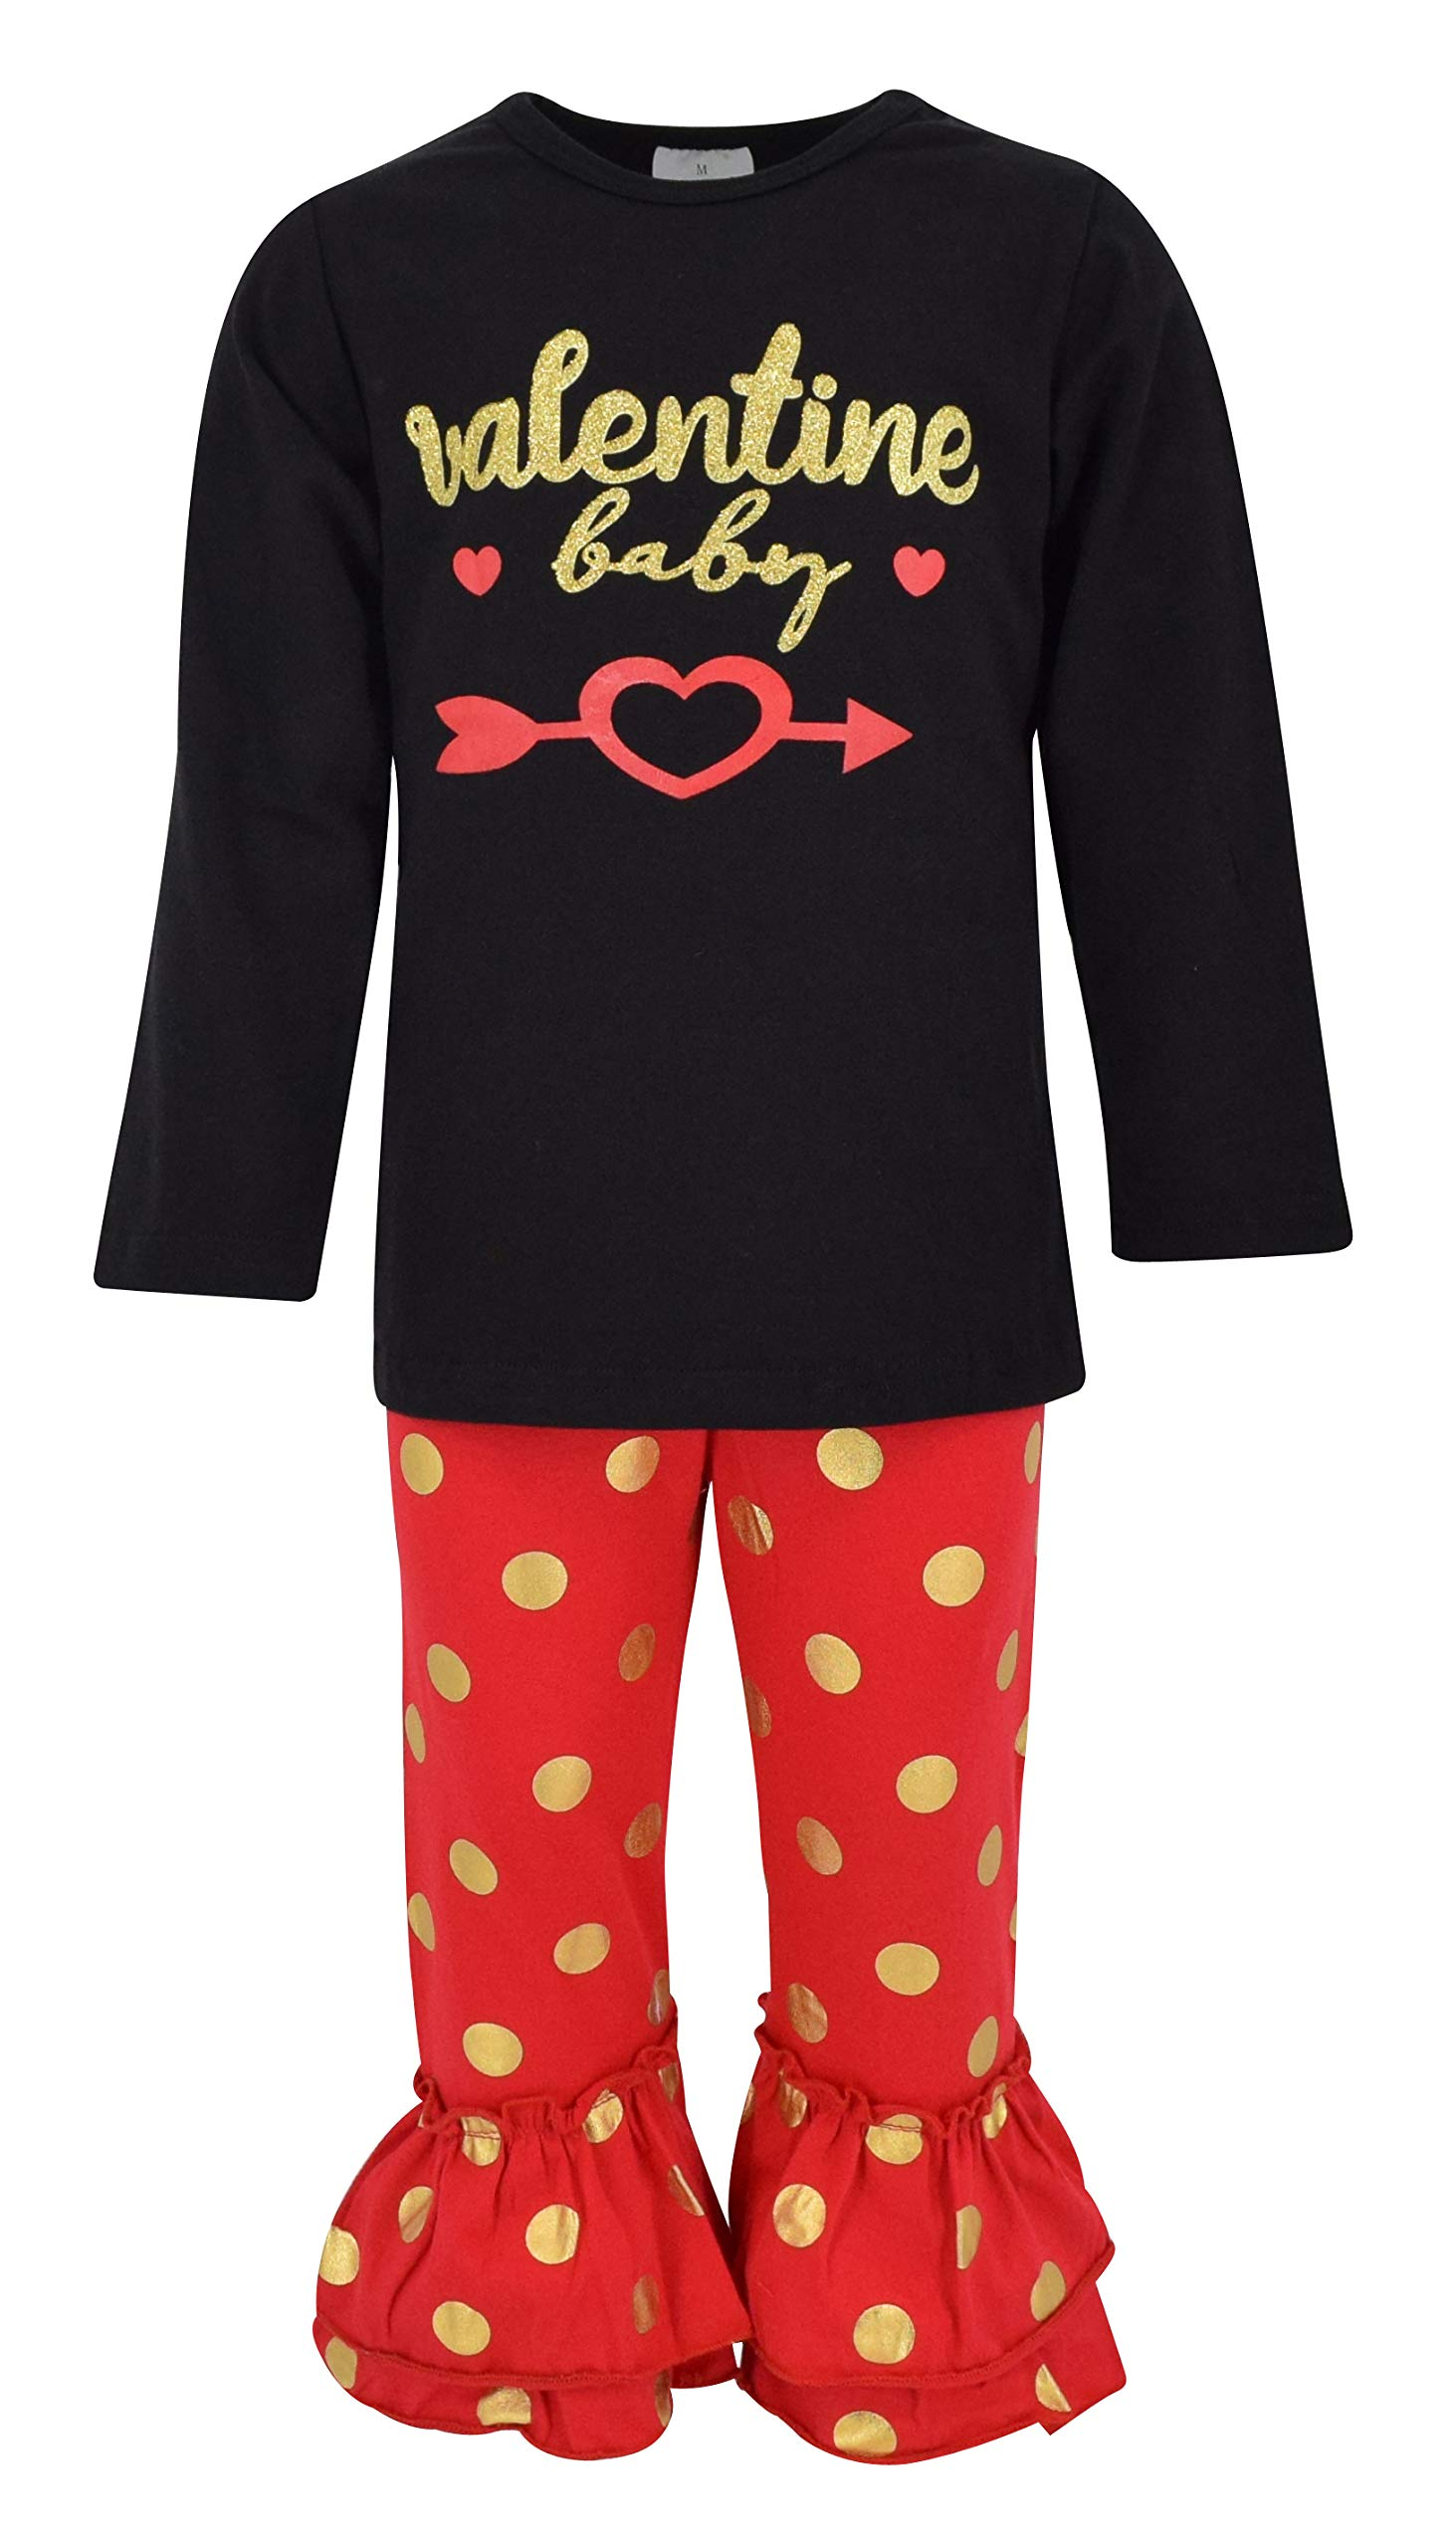 Unique Baby Girls Polka Dot Valentine Baby 2 Piece Outfit